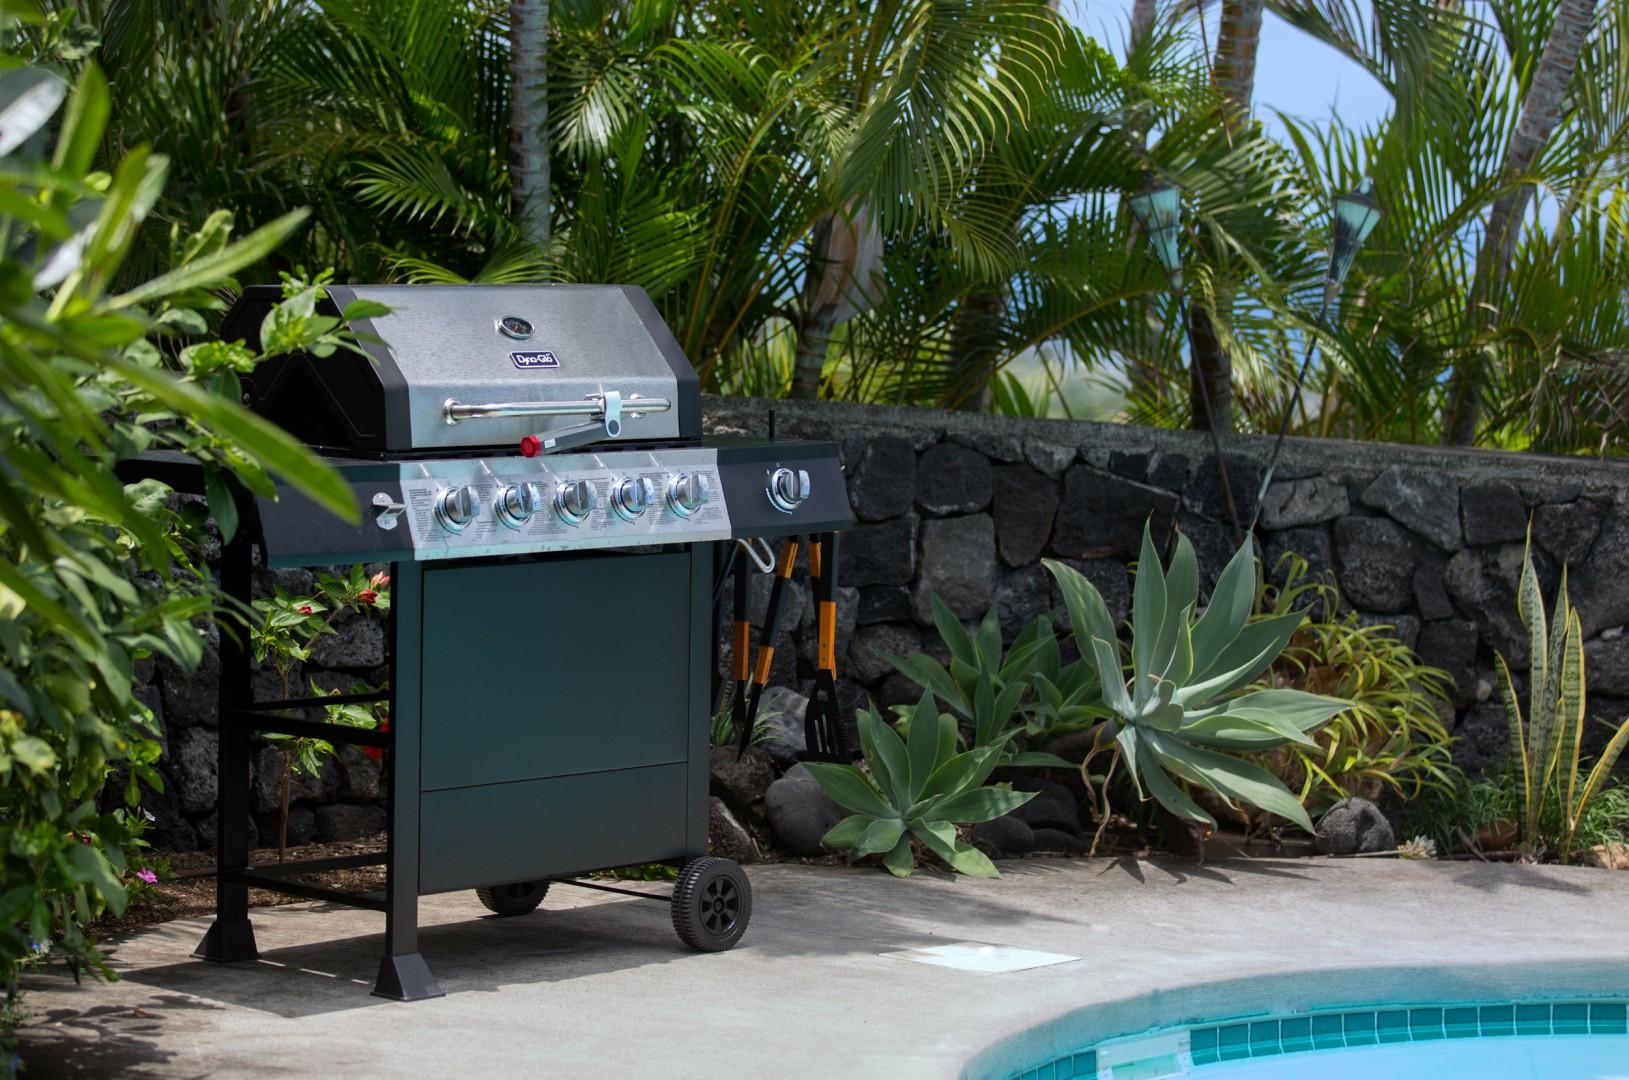 Barbecue poolside with family and friends.